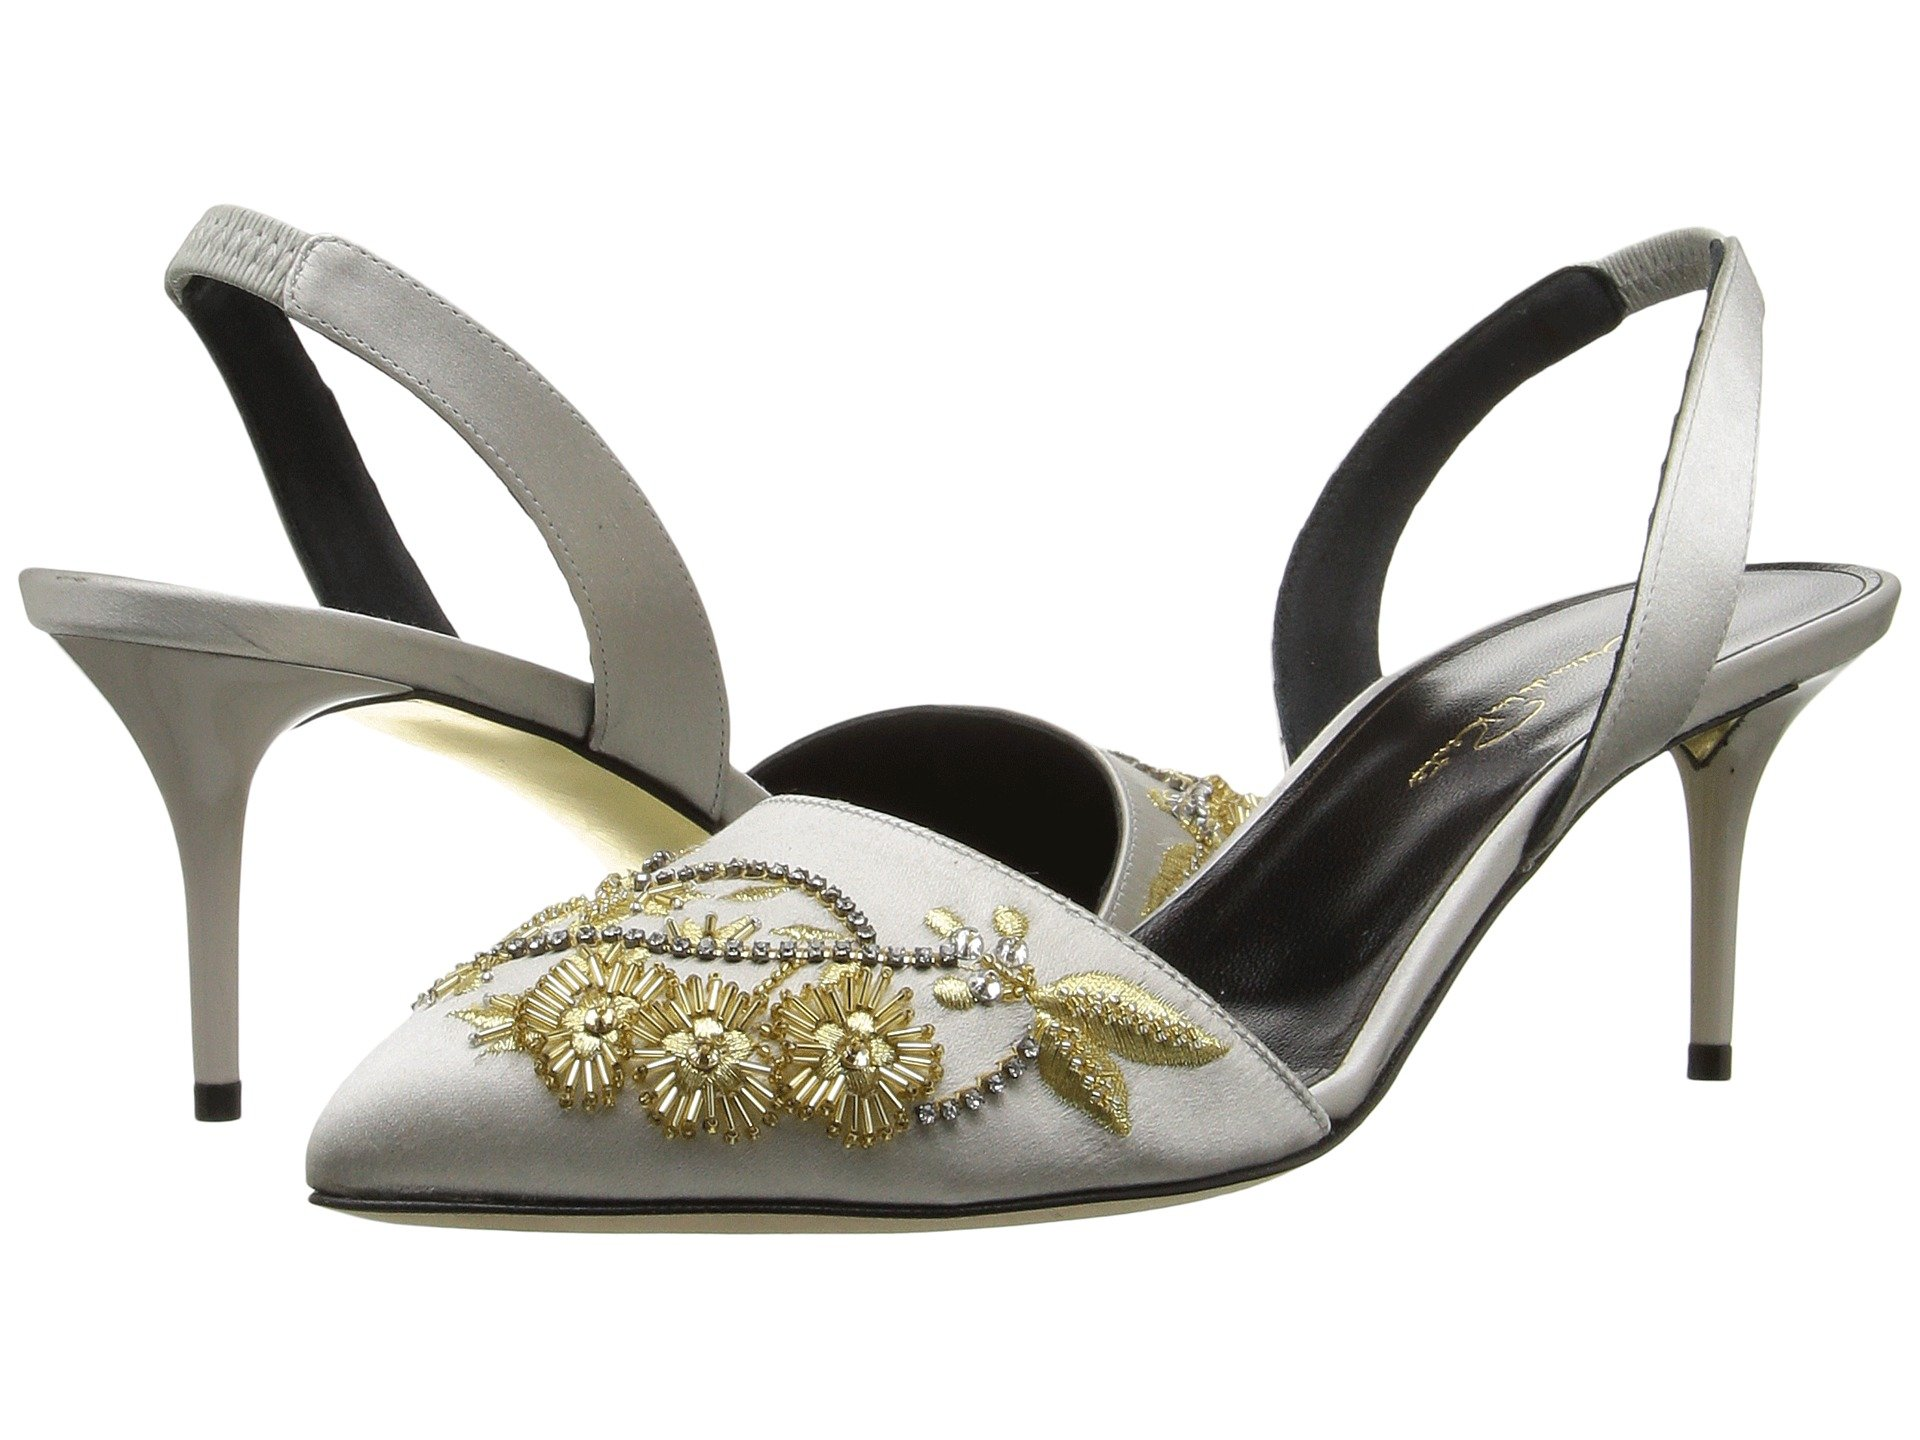 Oscar de la Renta Sling Back Satin Sandals